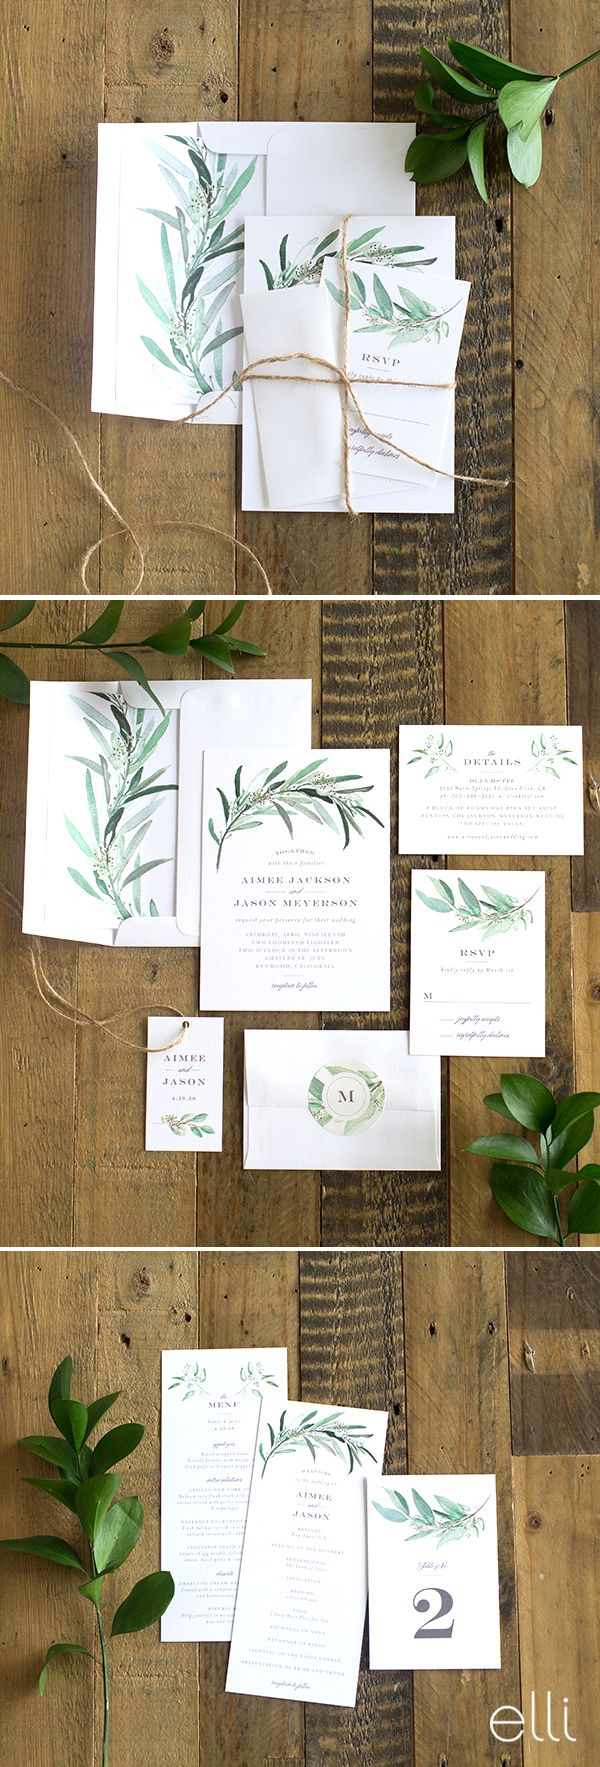 Gorgeous lush greenery wedding invitation suite 222